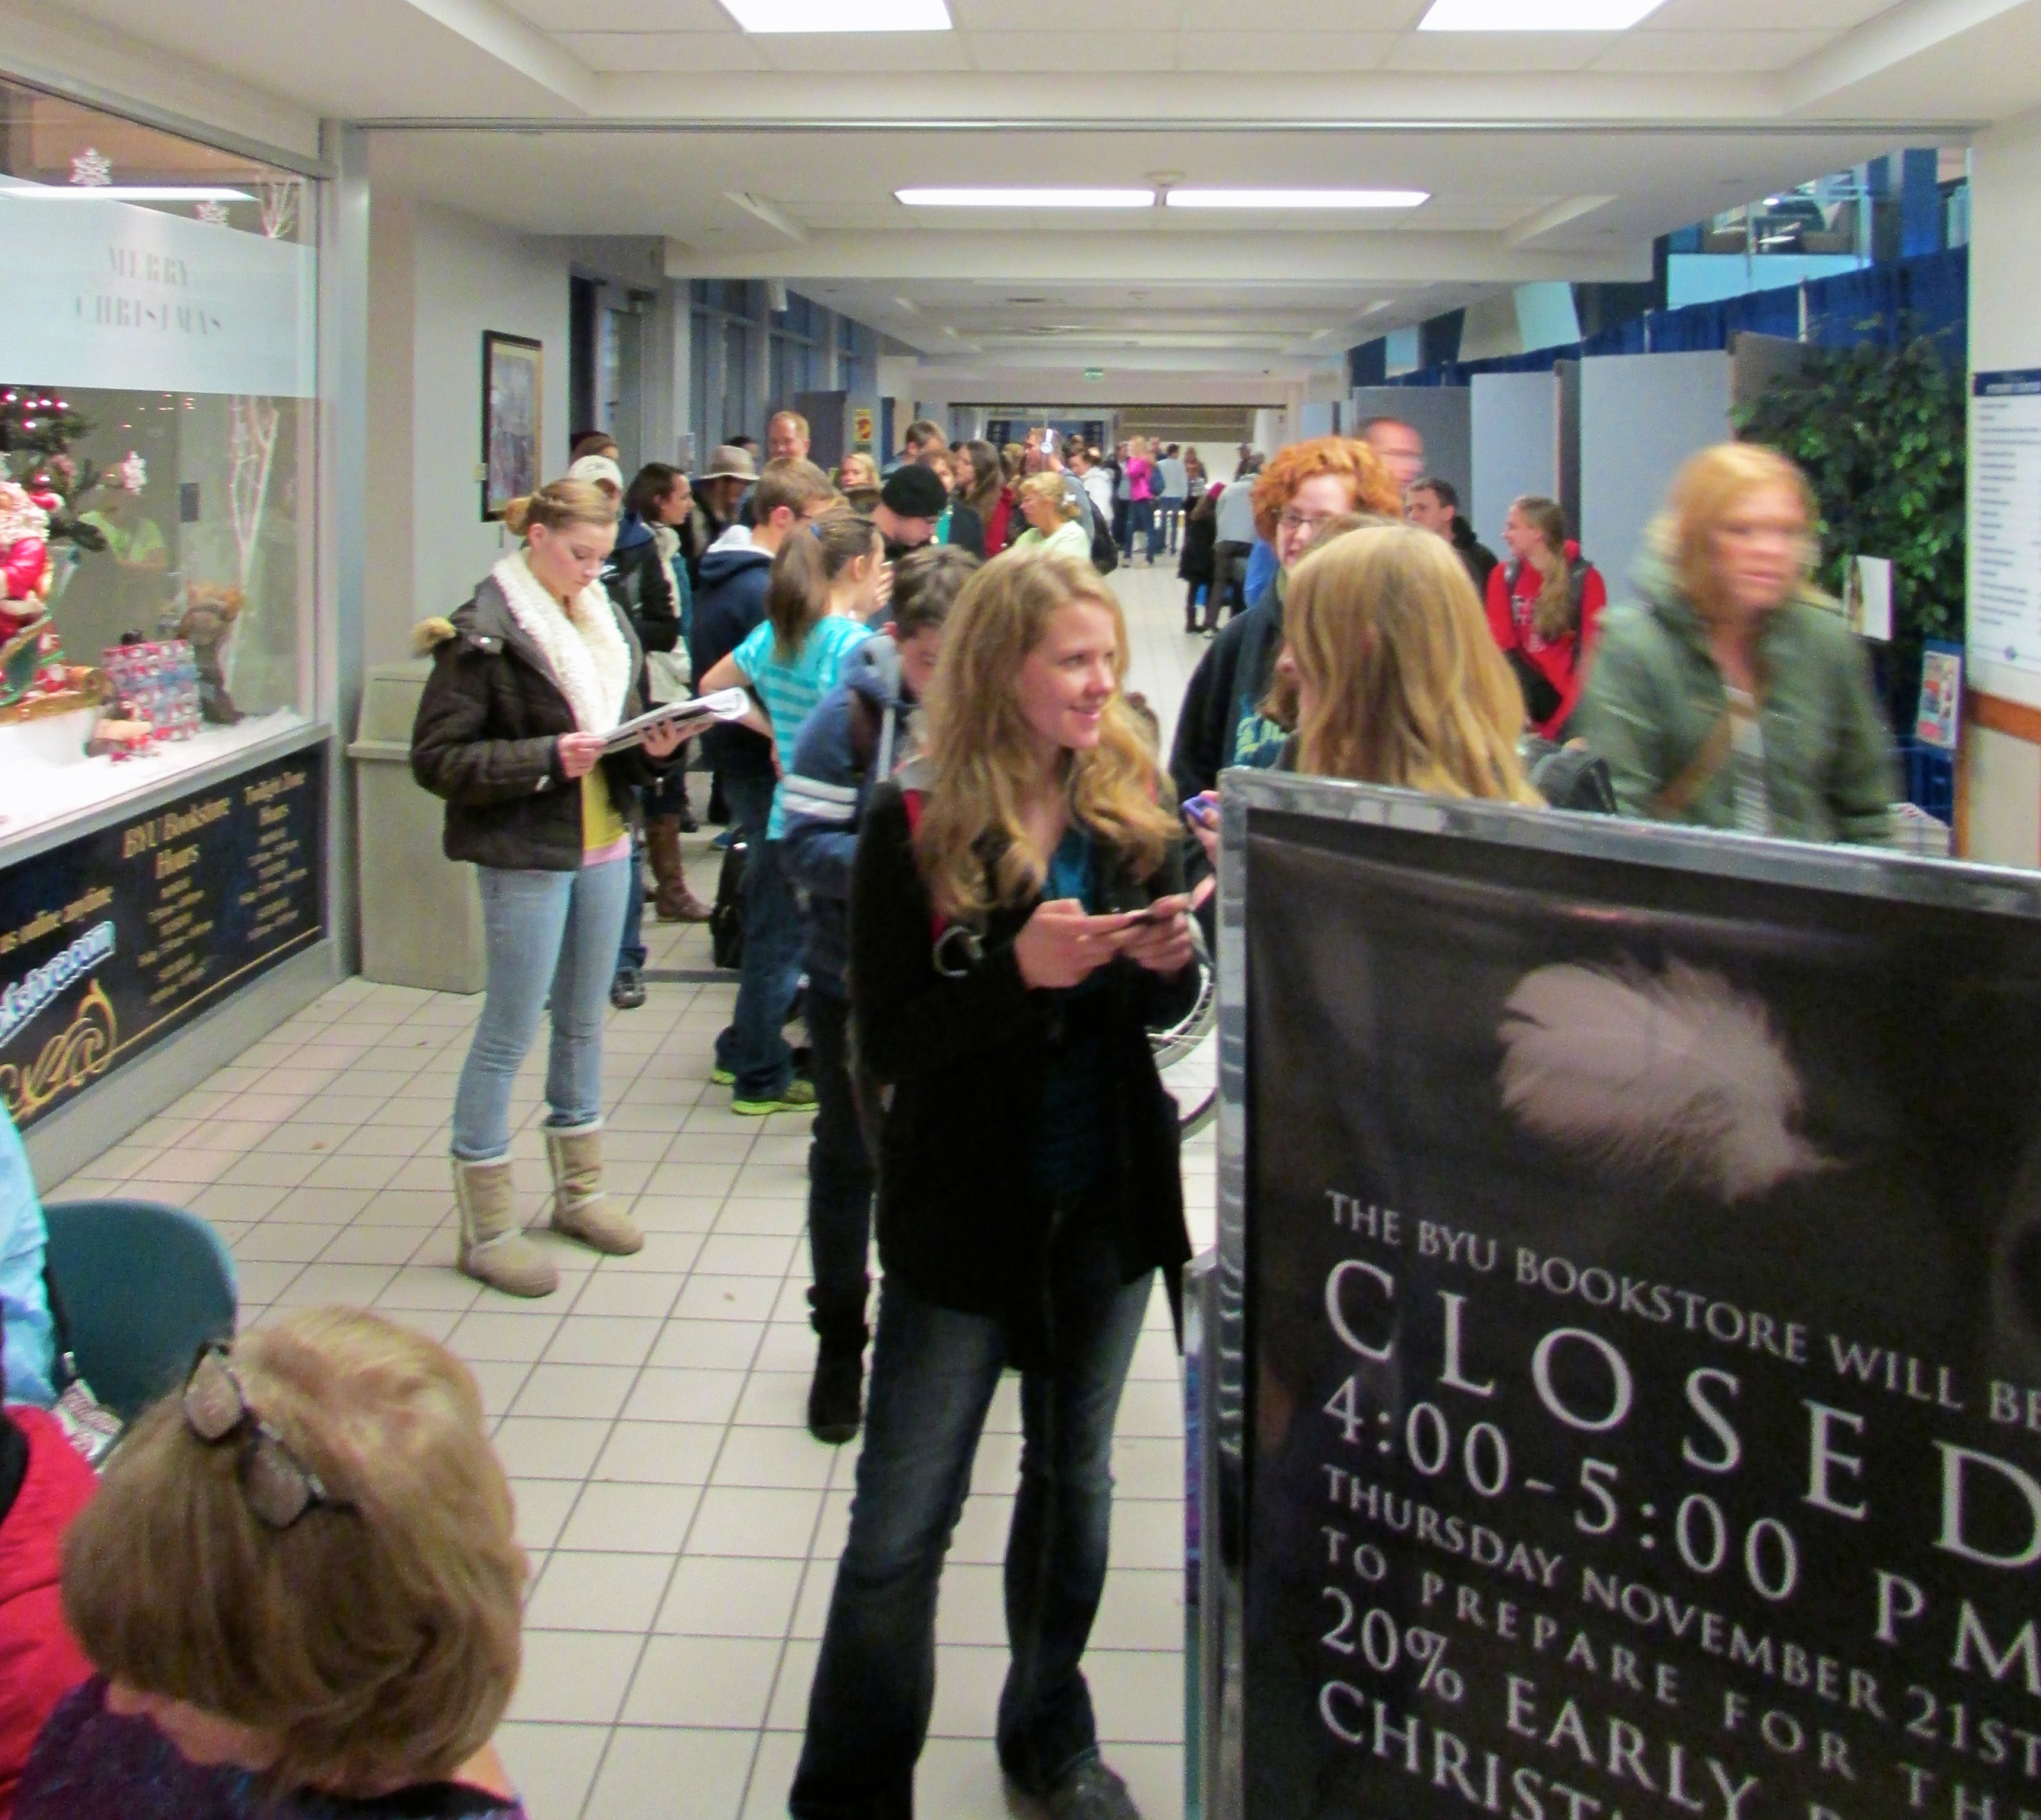 Crowds gathered and lines formed while anxiously awaiting the start of the Early Christmas Sale at the BYU Bookstore.